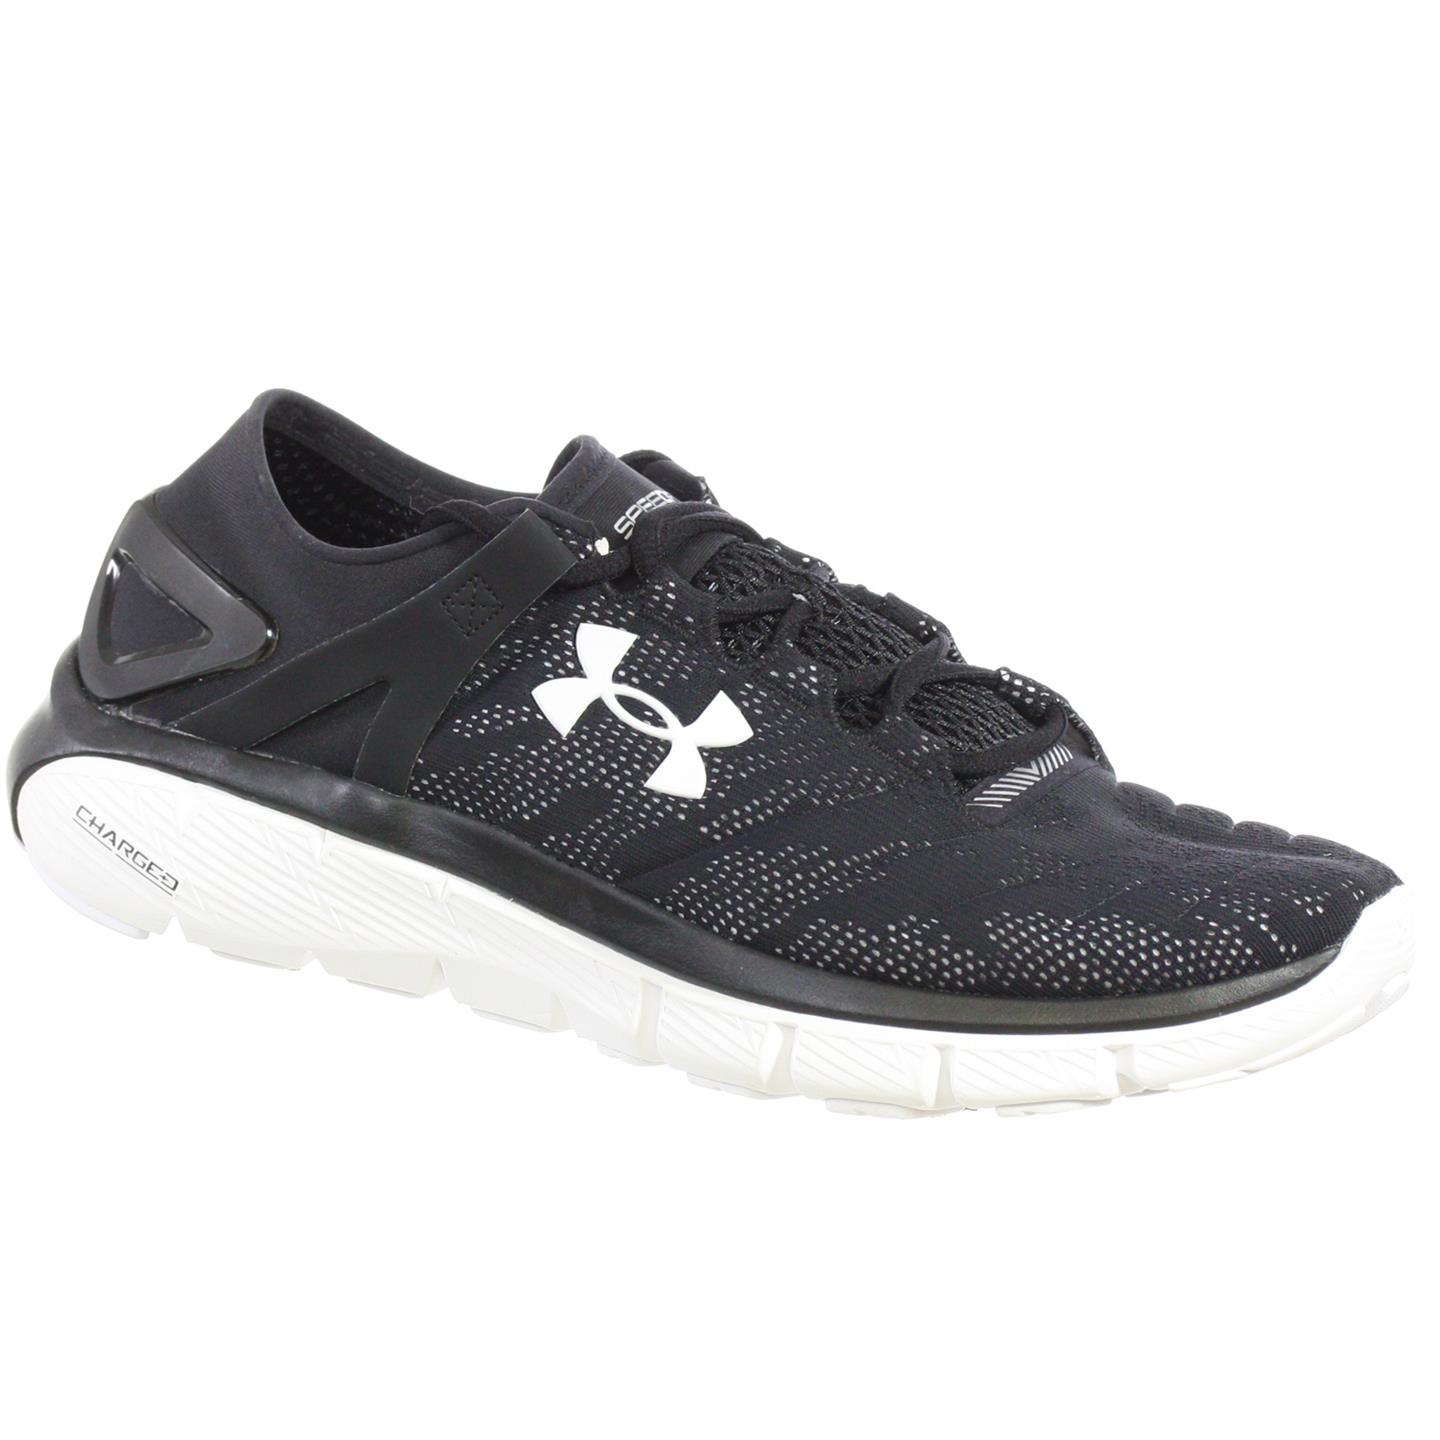 Under Armour - UNDER ARMOUR WOMEN S ATHLETIC SHOES SPEEDFORM FORTIS VENT  BLACK WHITE 11 M - Walmart.com 3d3f791479